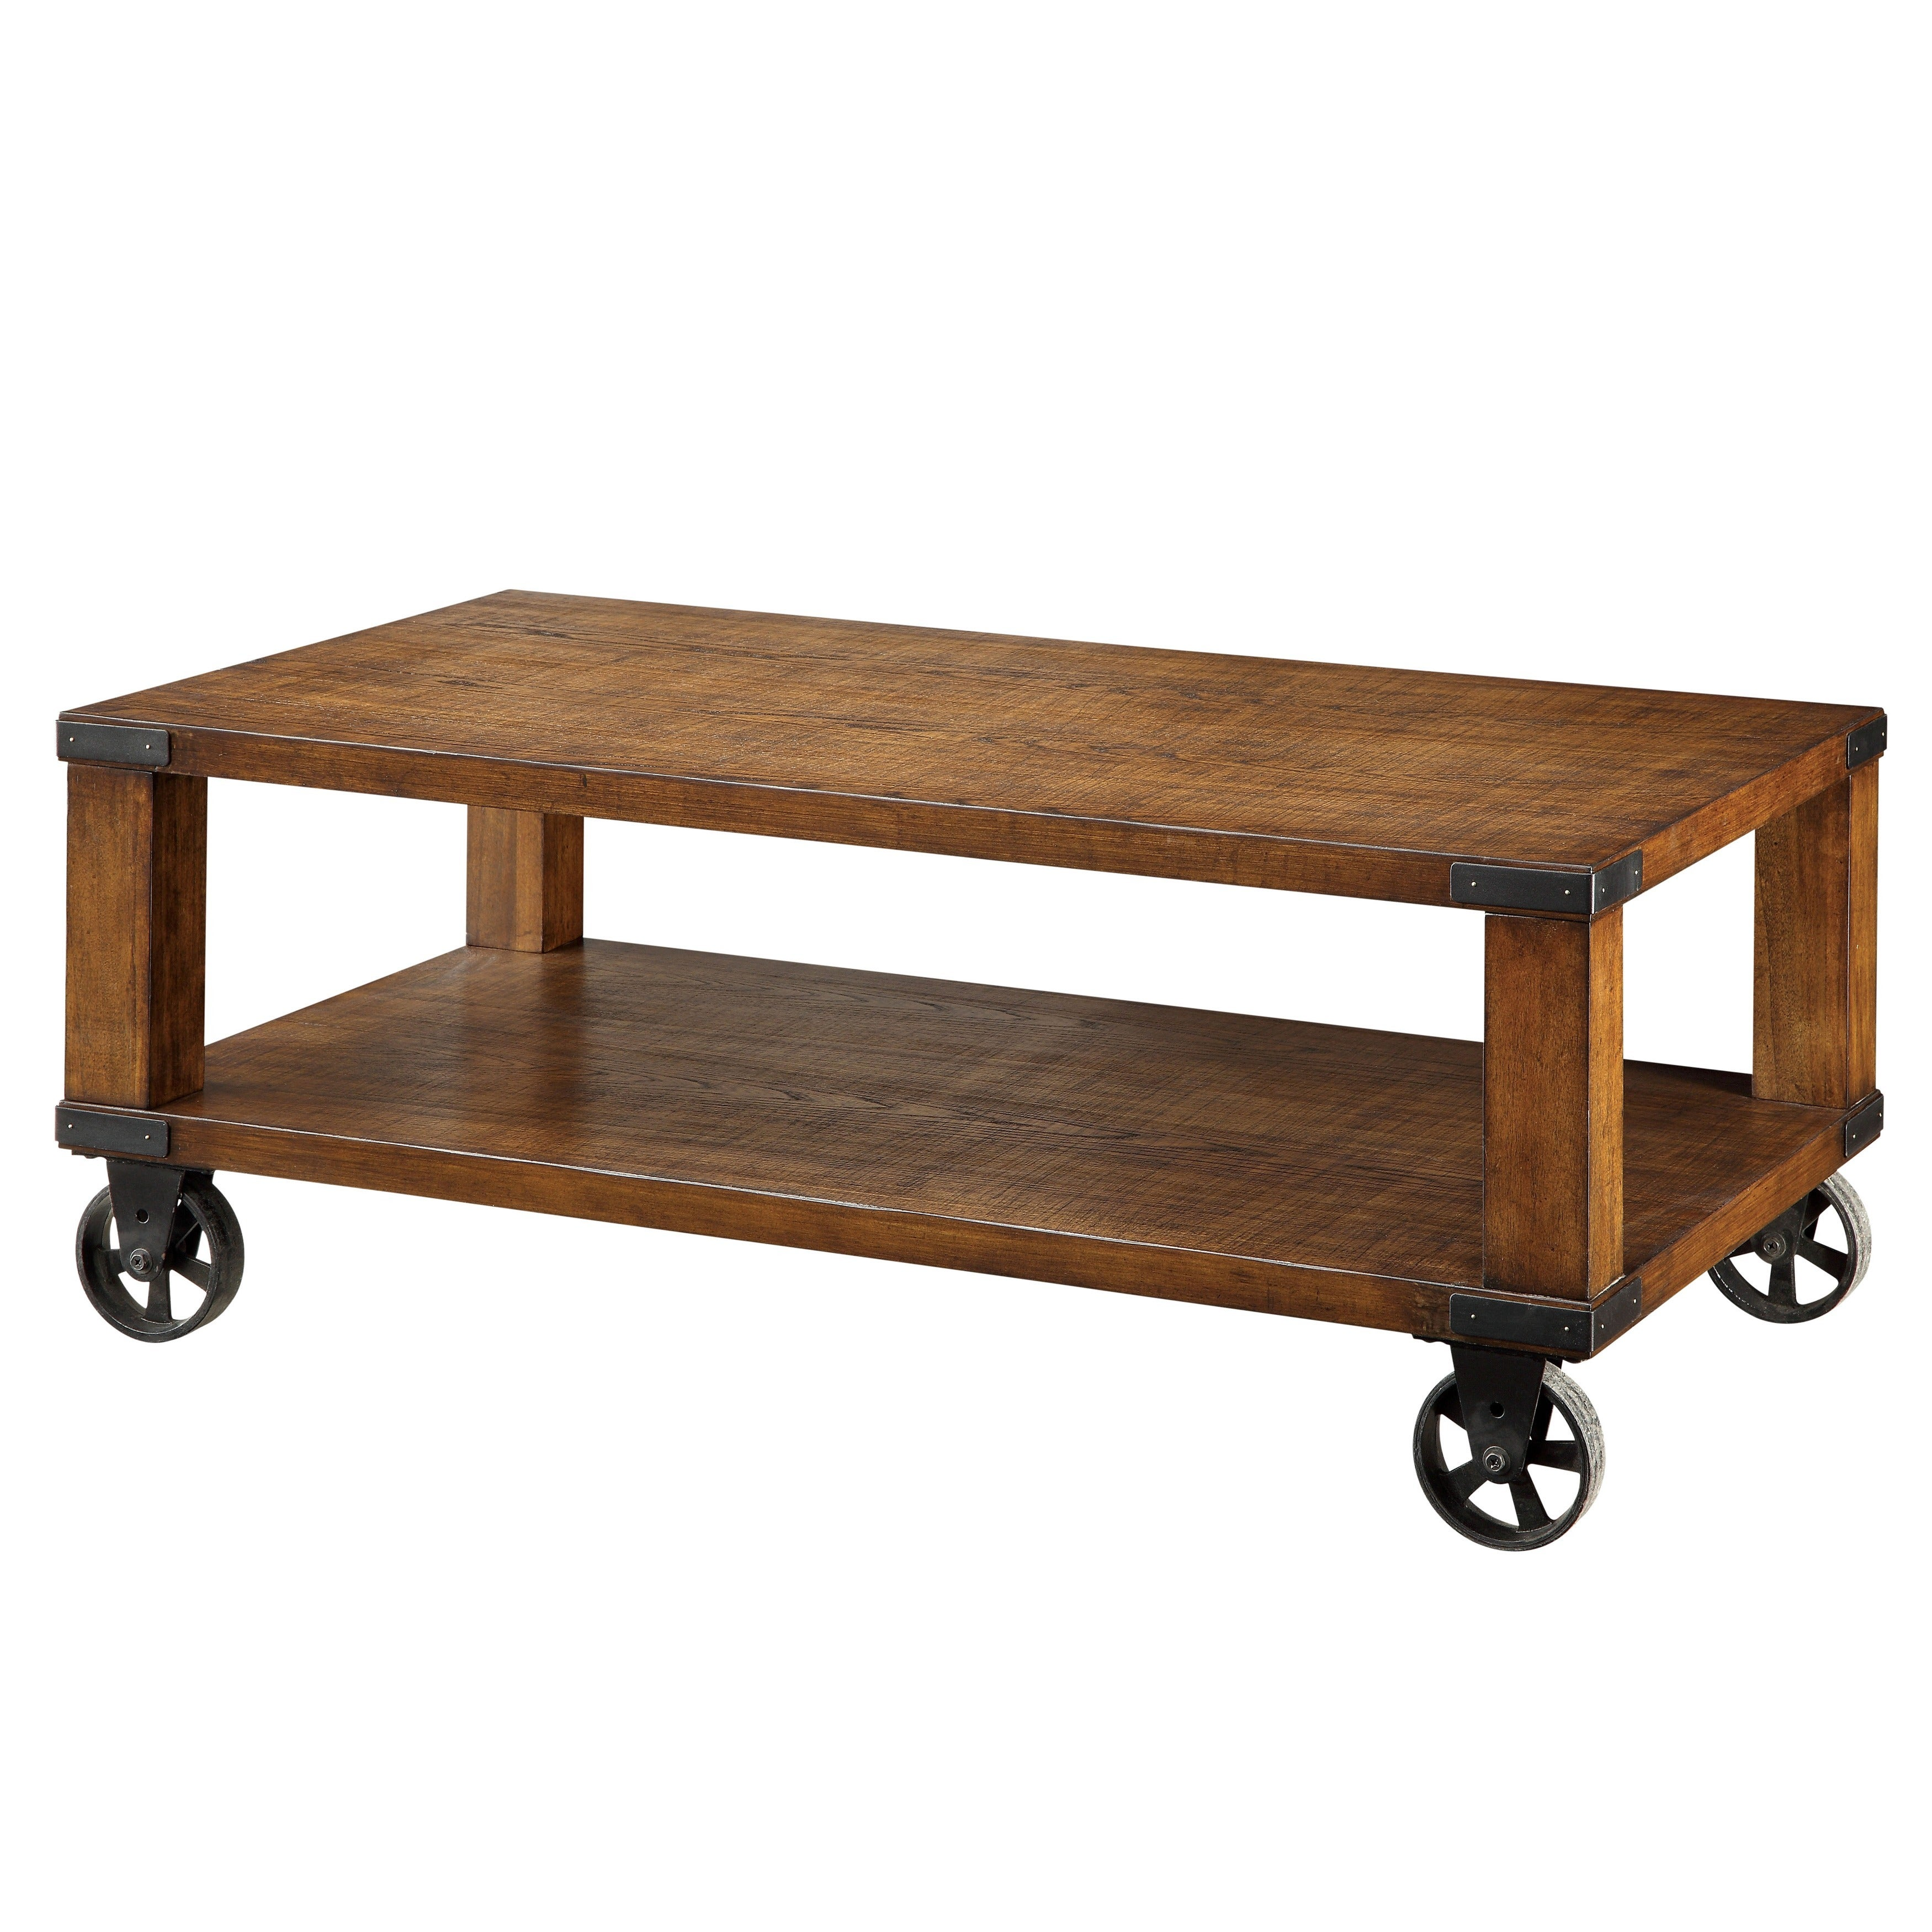 Furniture Of America Royce Modern Industrial Coffee Table   Free Shipping  Today   Overstock.com   16797079